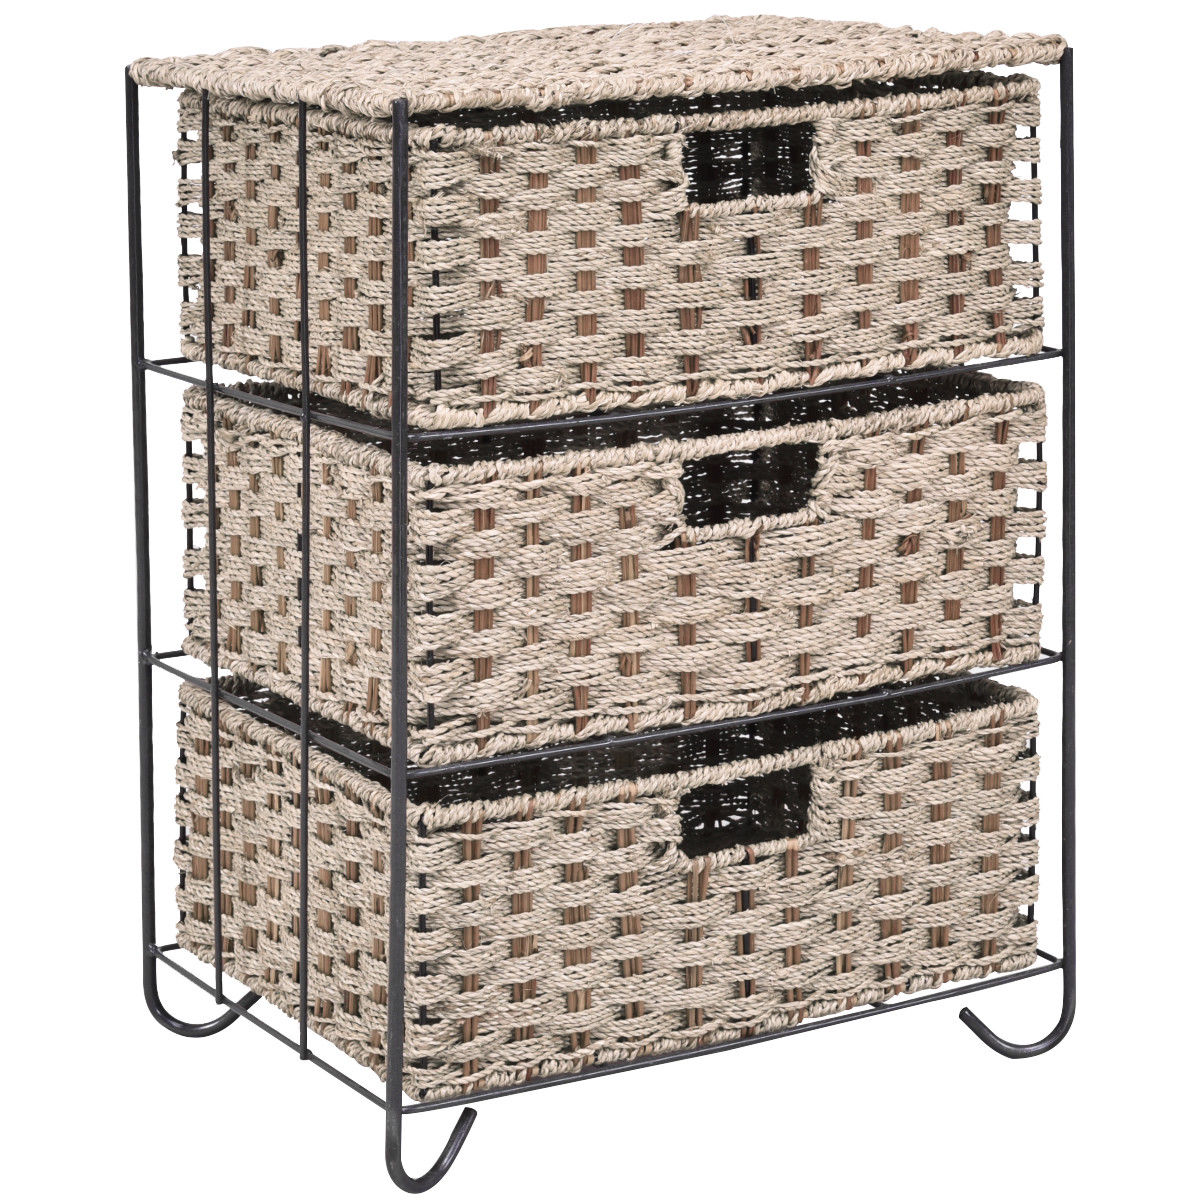 Costway Drawer Storage Unit 3 Rattan Wicker Baskets Bin Chest Tower Rack Organizer Shelf